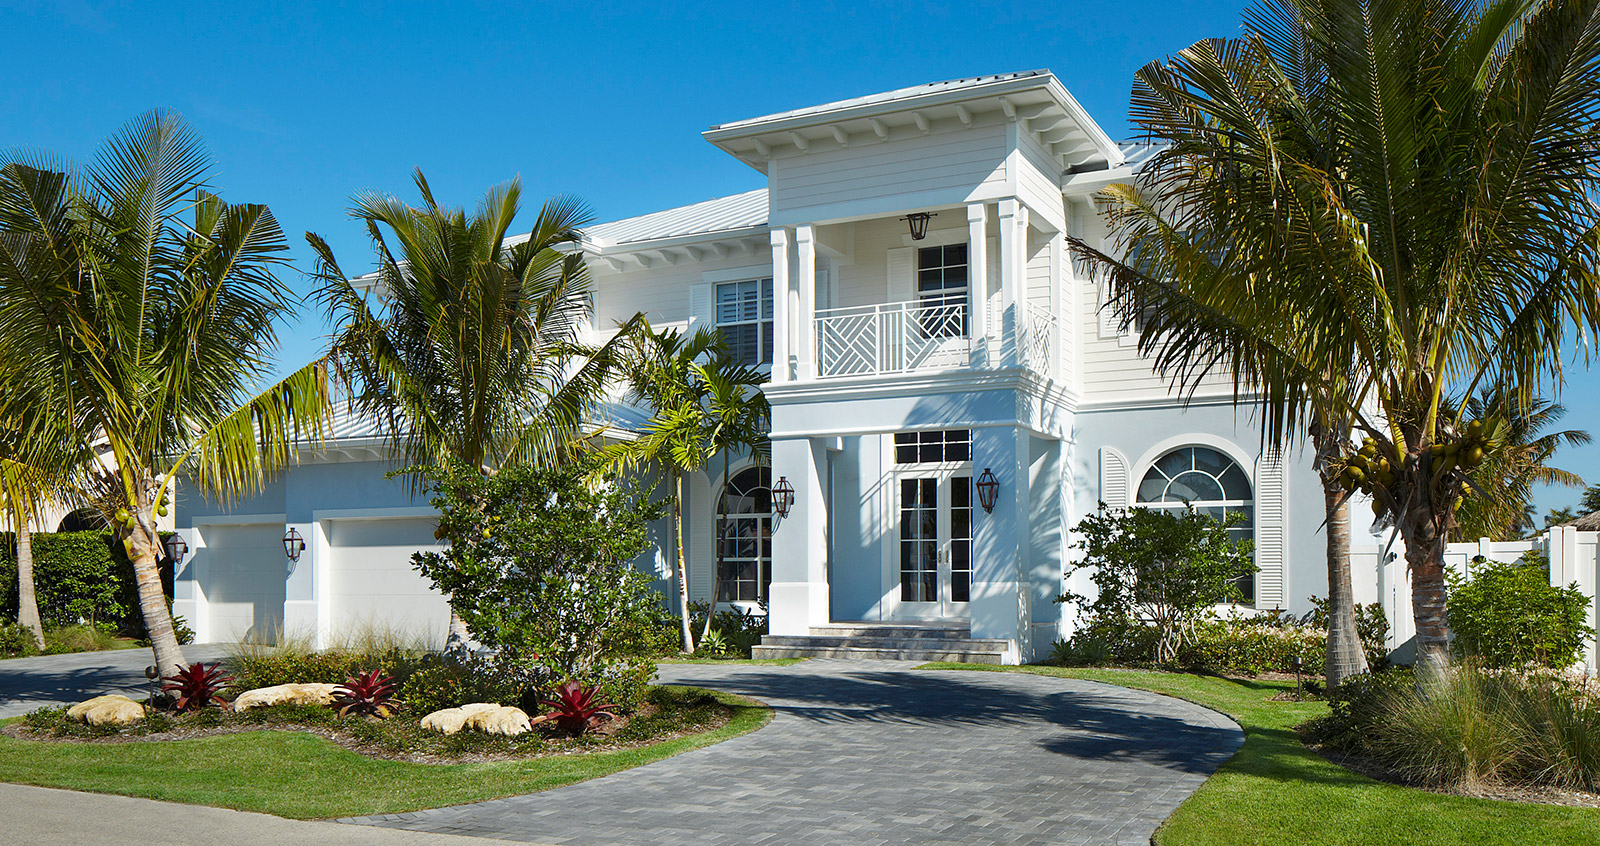 Luxury west indies style home Architect florida